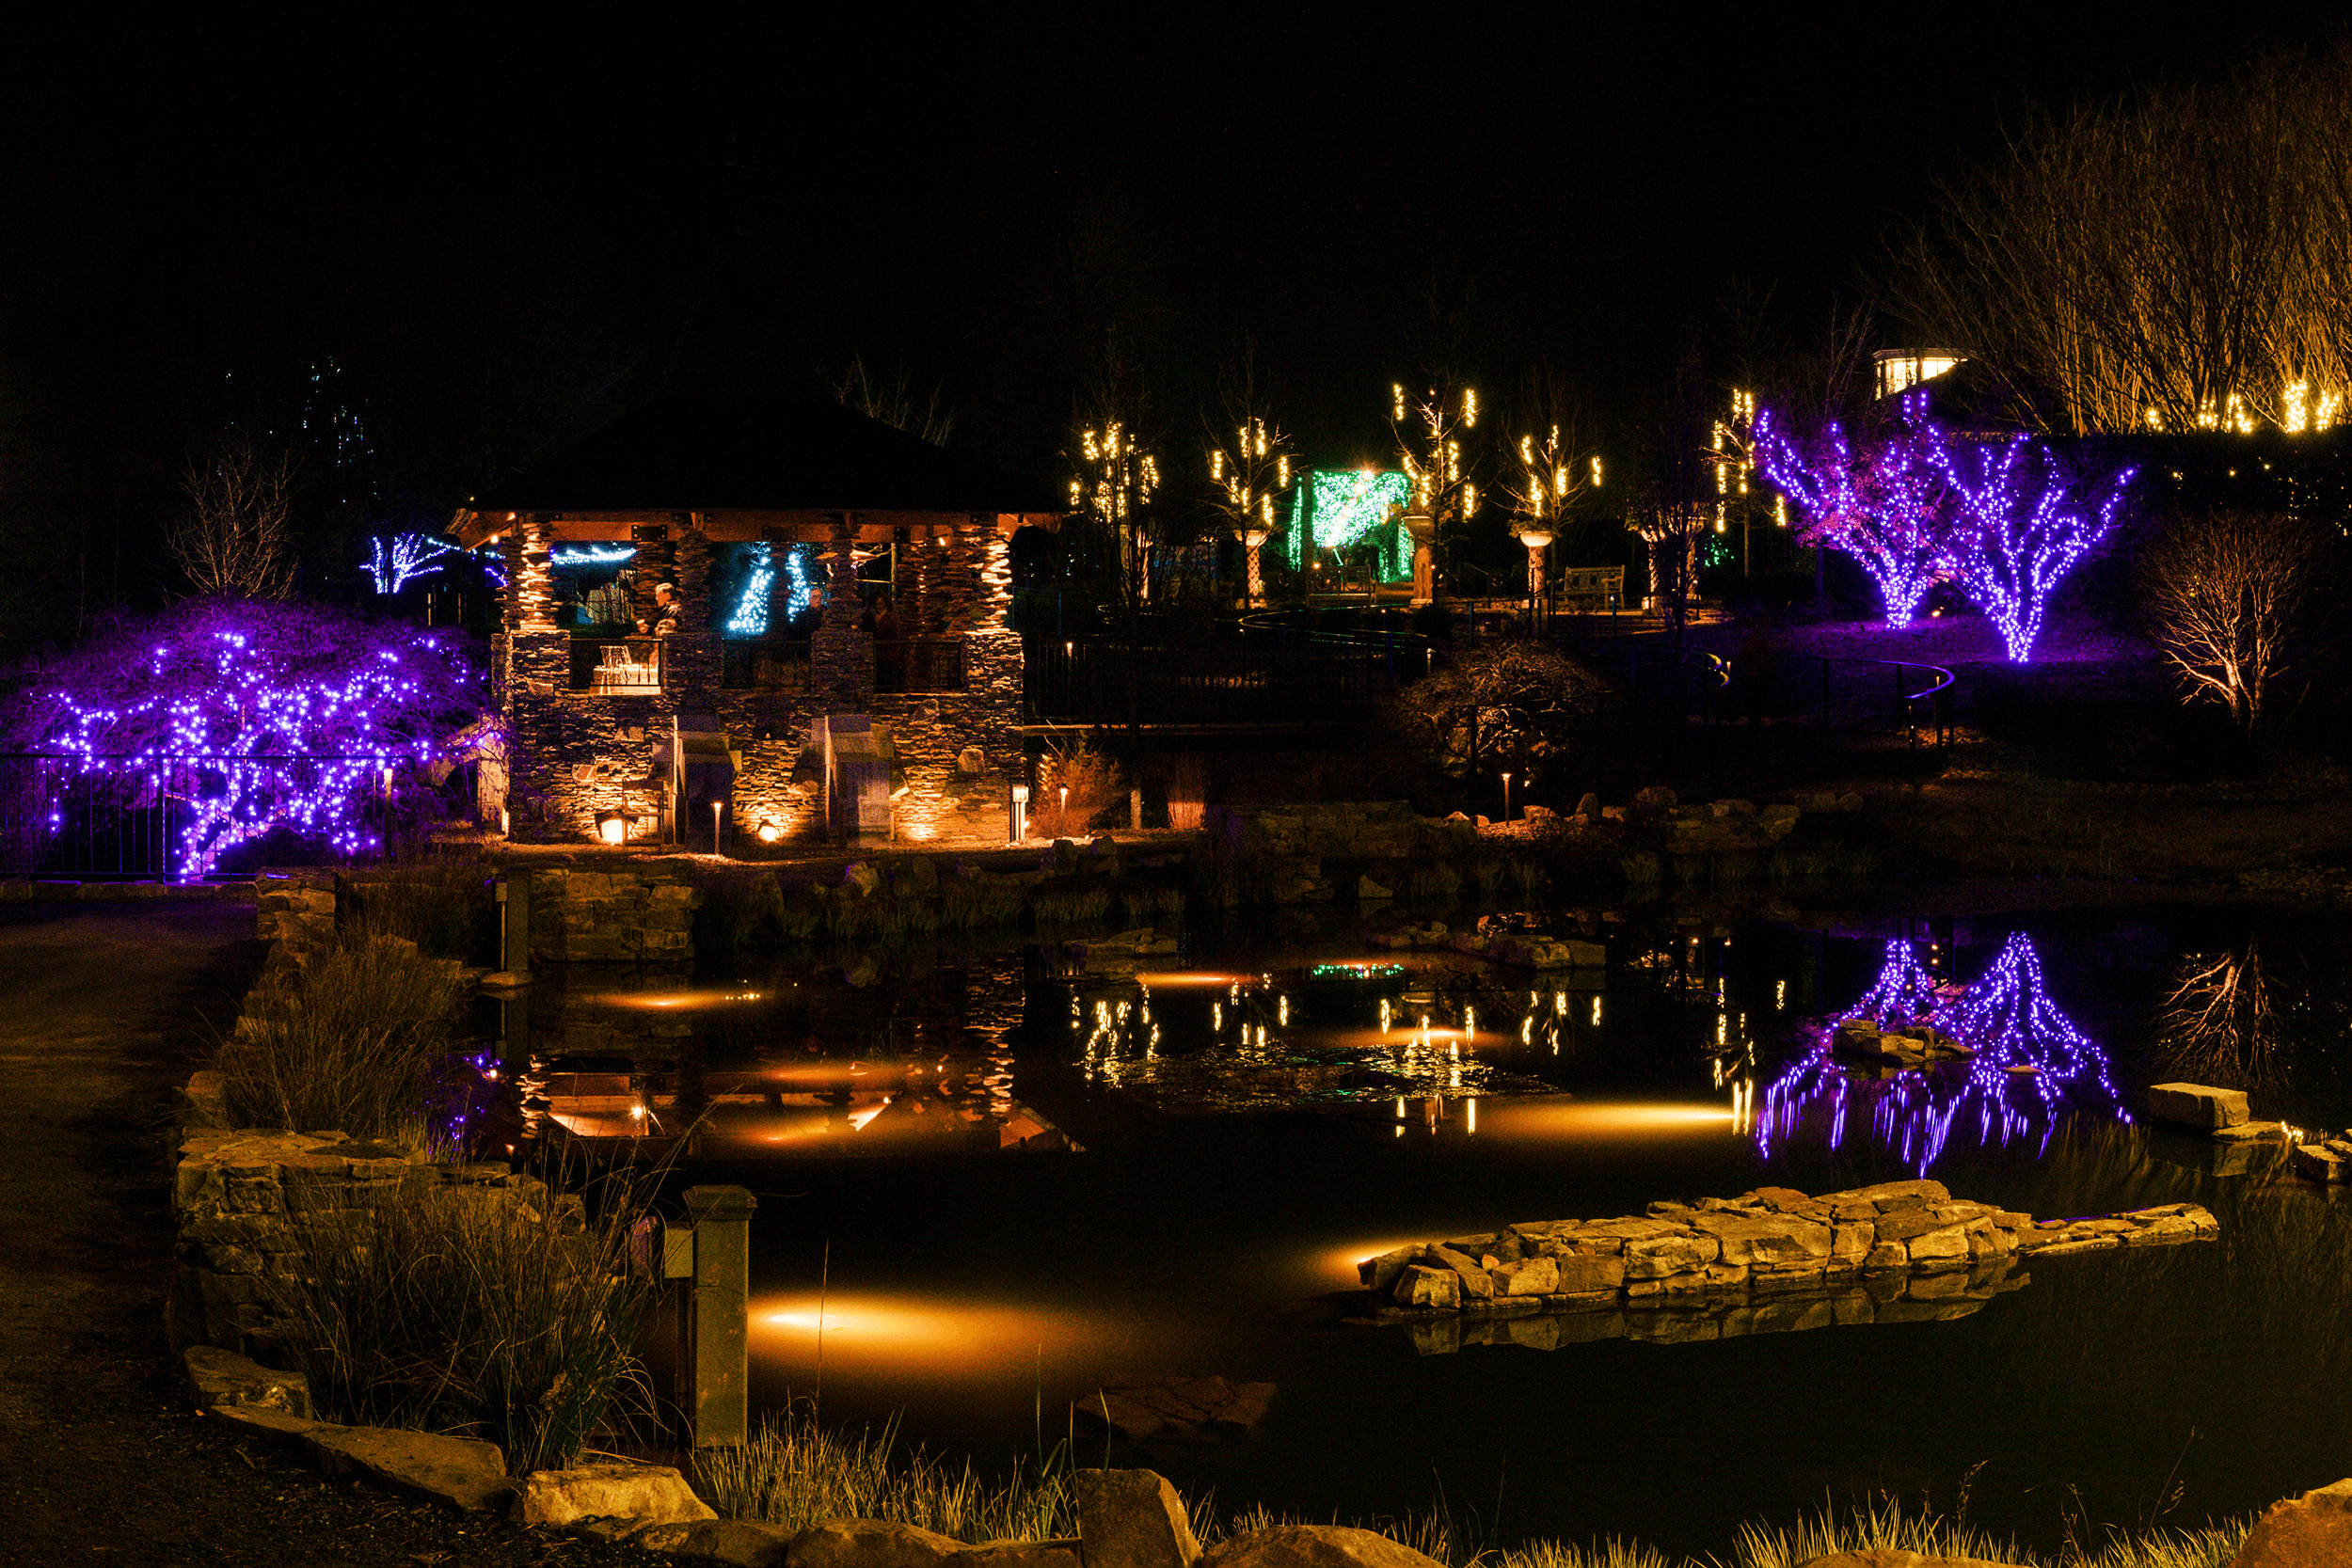 And here it is. The lights reflect magically in the pond and give the scene a romantic touch.